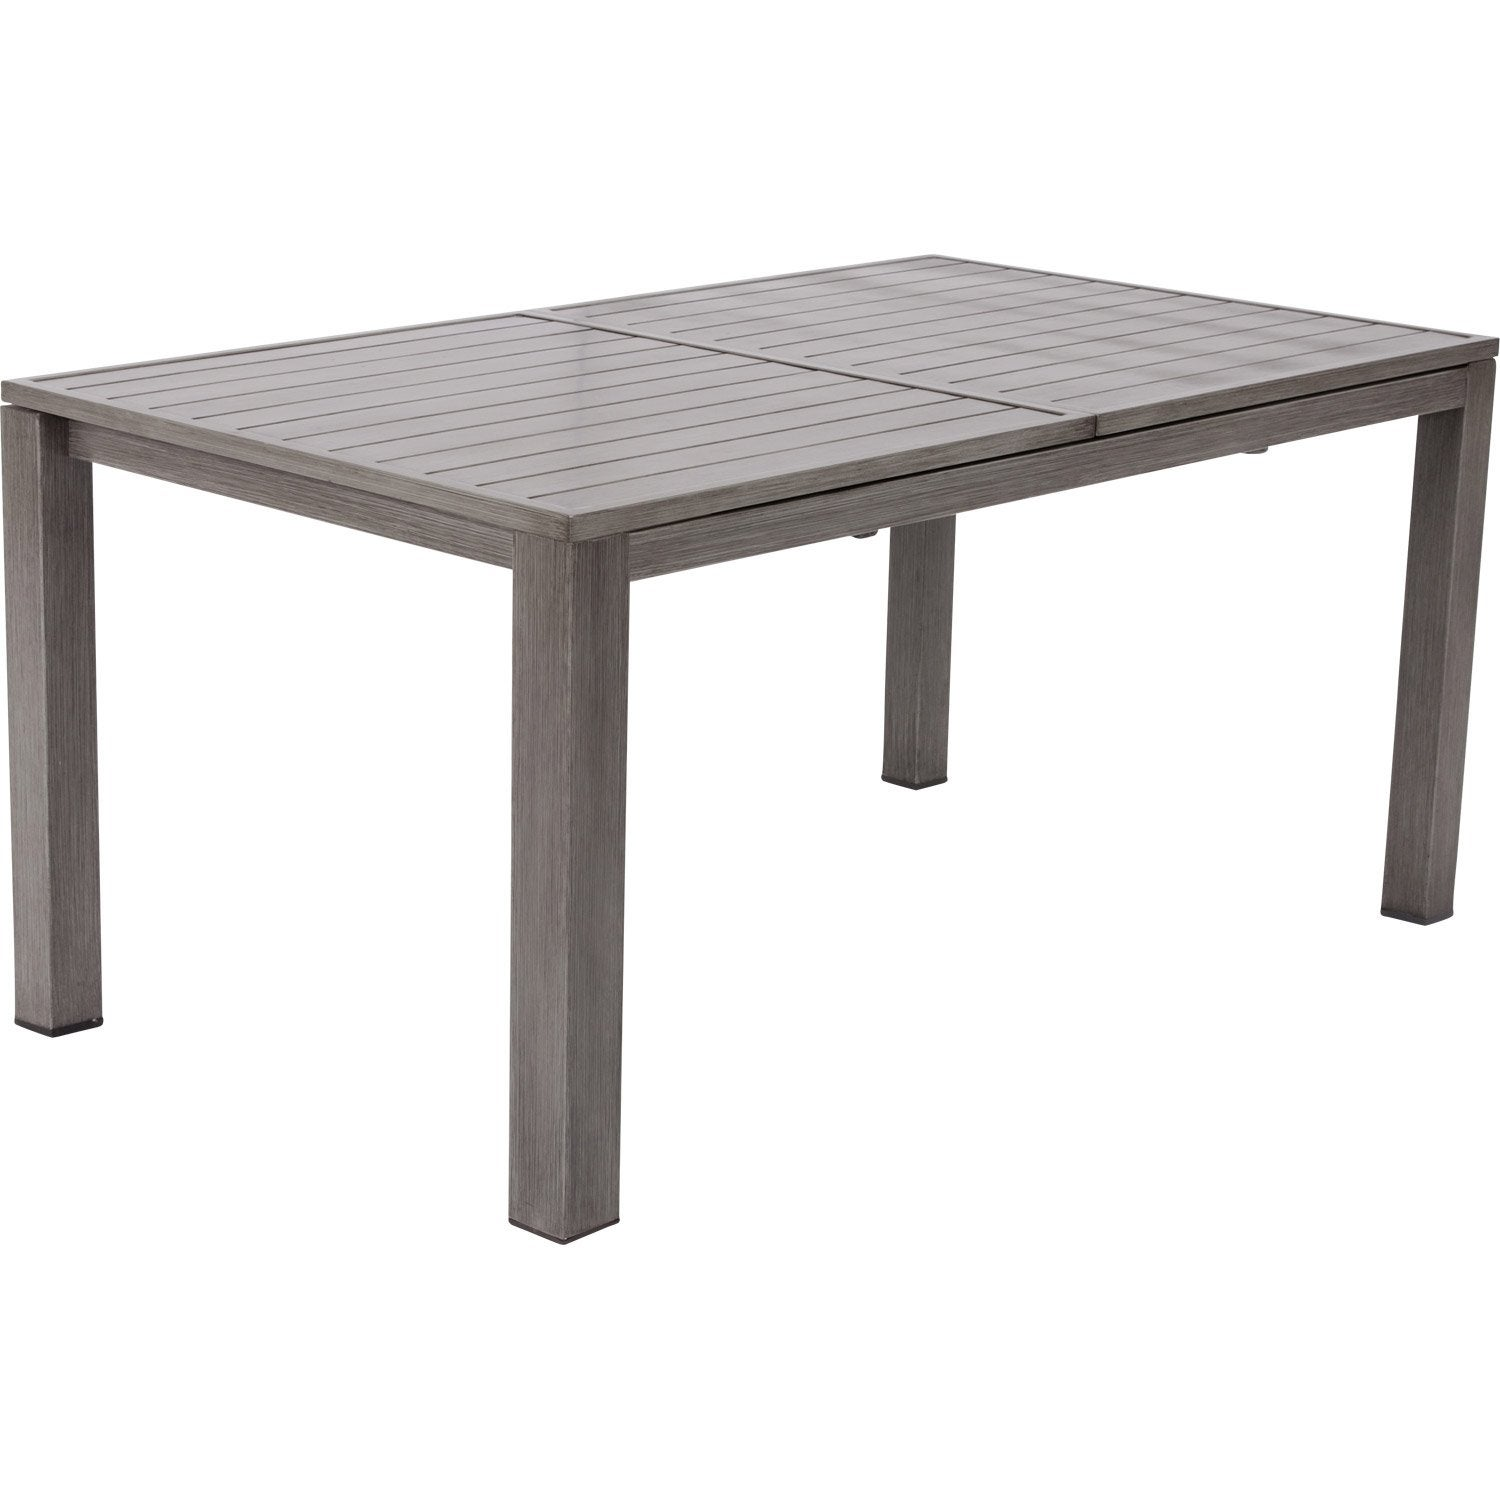 Table de jardin naterial antibes rectangulaire gris look bois 6 8 personnes - Leroy merlin table jardin ...